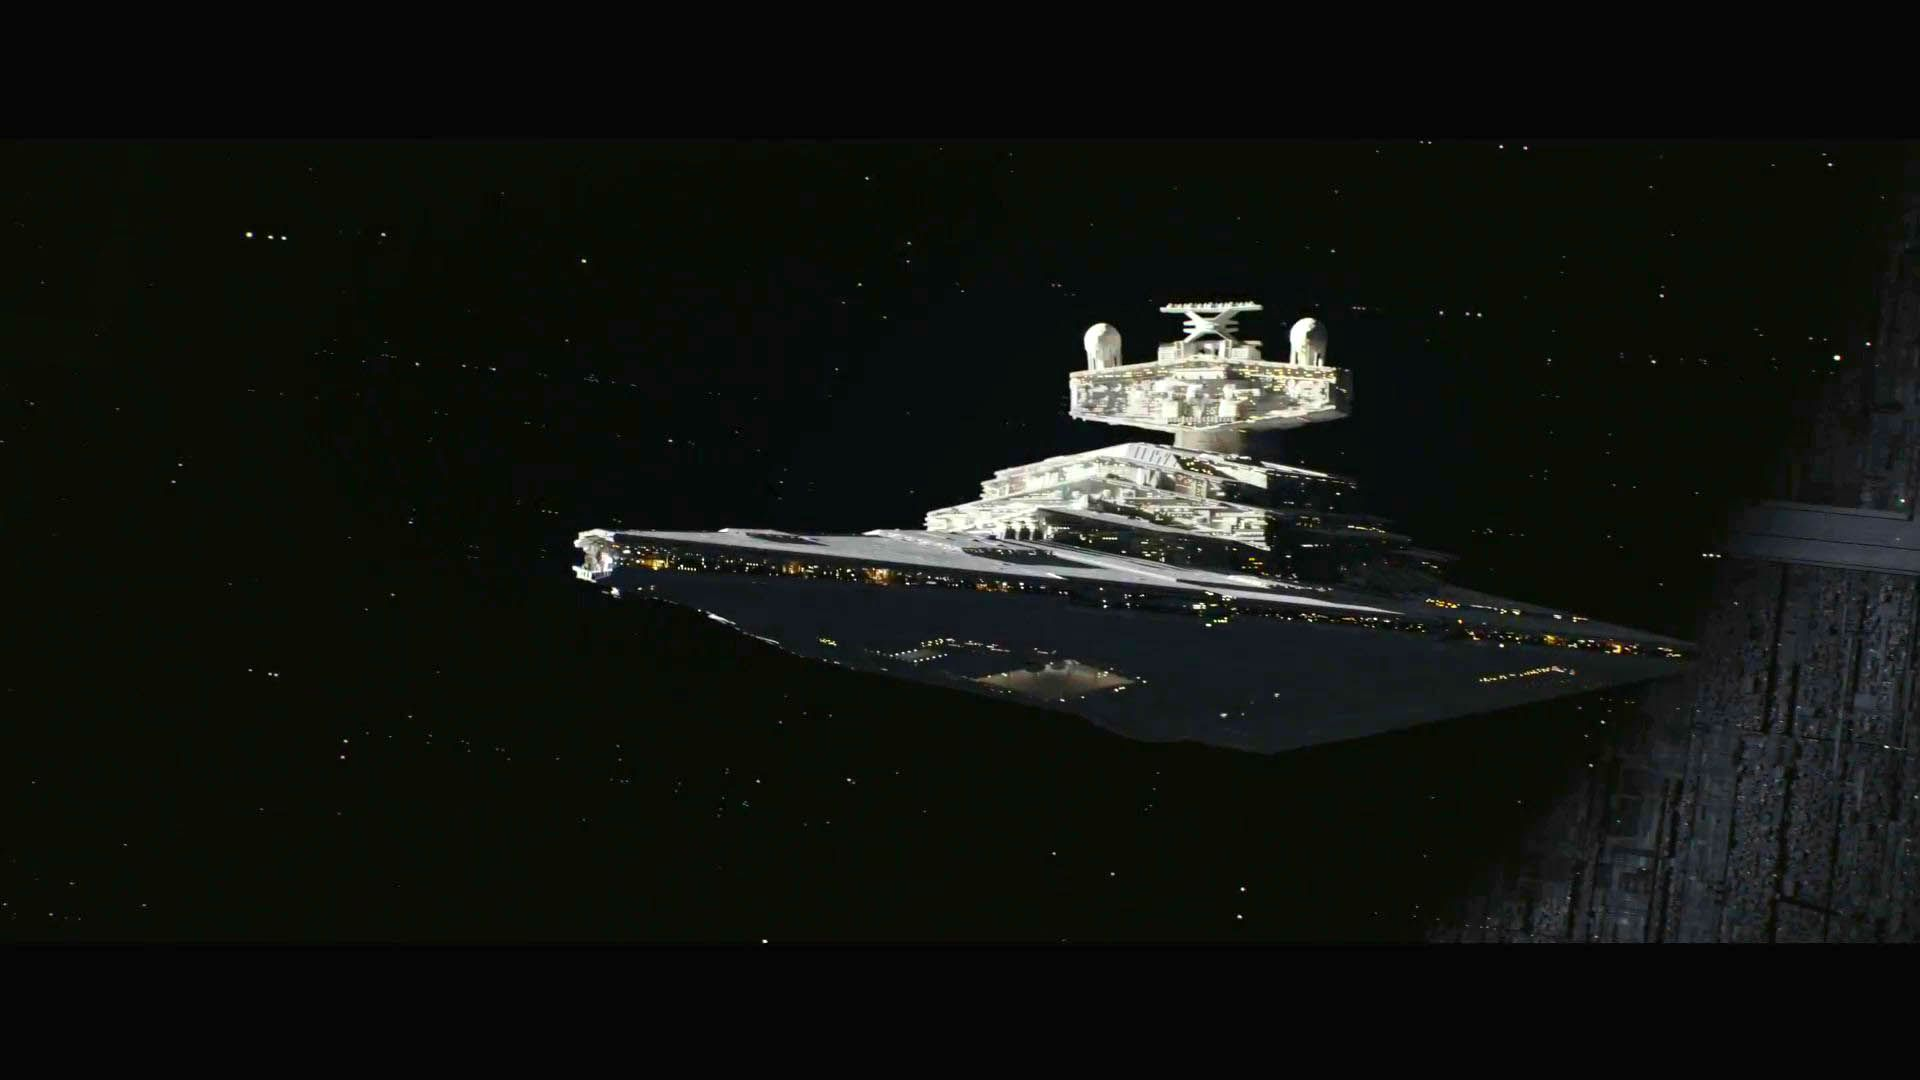 Star Wars Rogue One Star Destroyer 1920x1080 Wallpaper Aaa